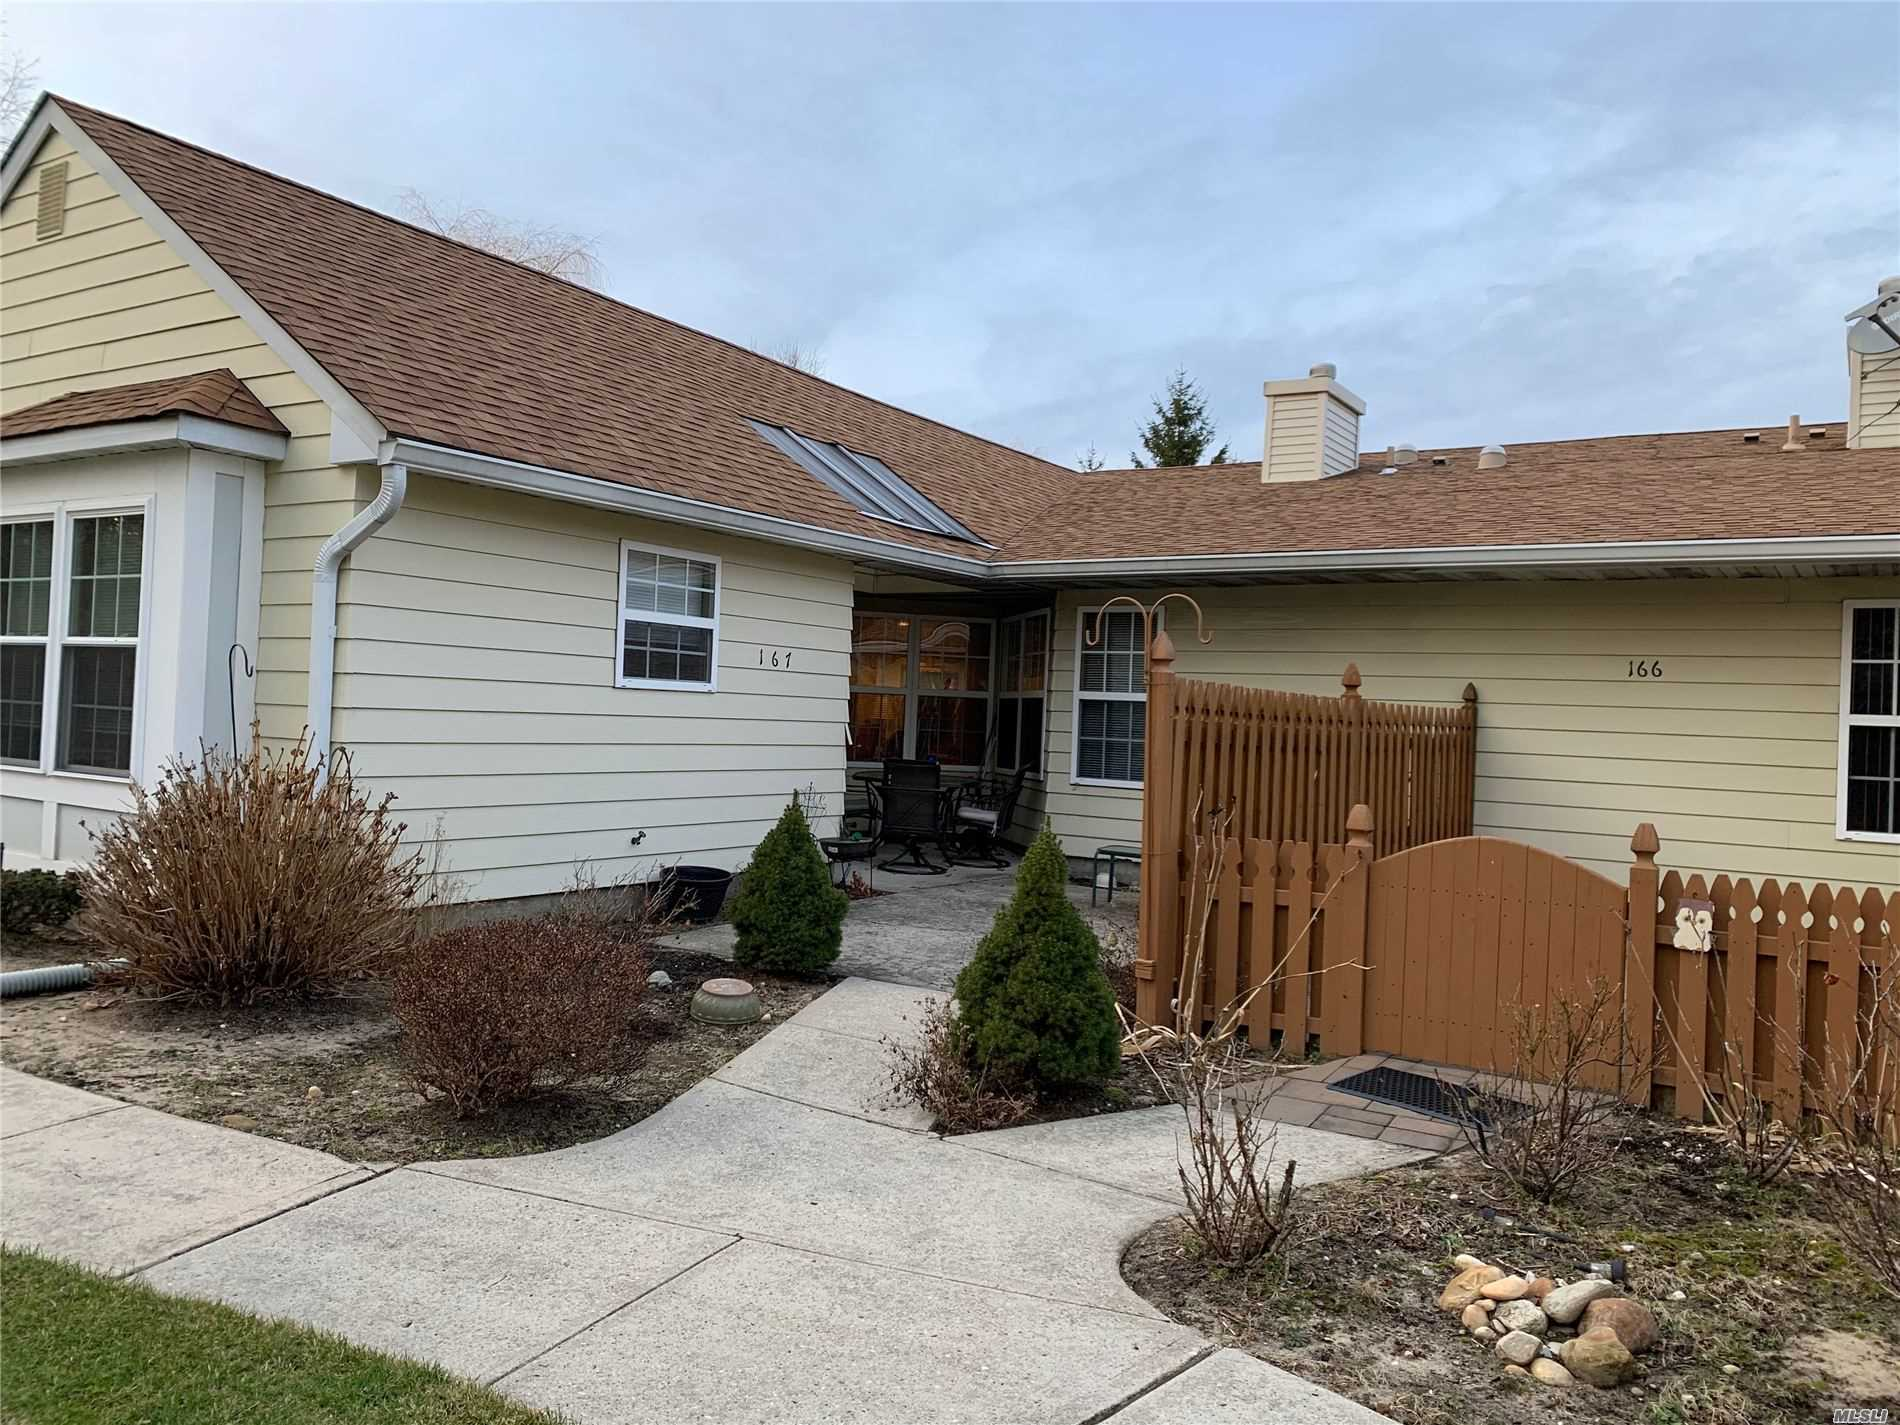 Property for sale at 167 Theodore Drive, Coram NY 11727, Coram,  New York 11727